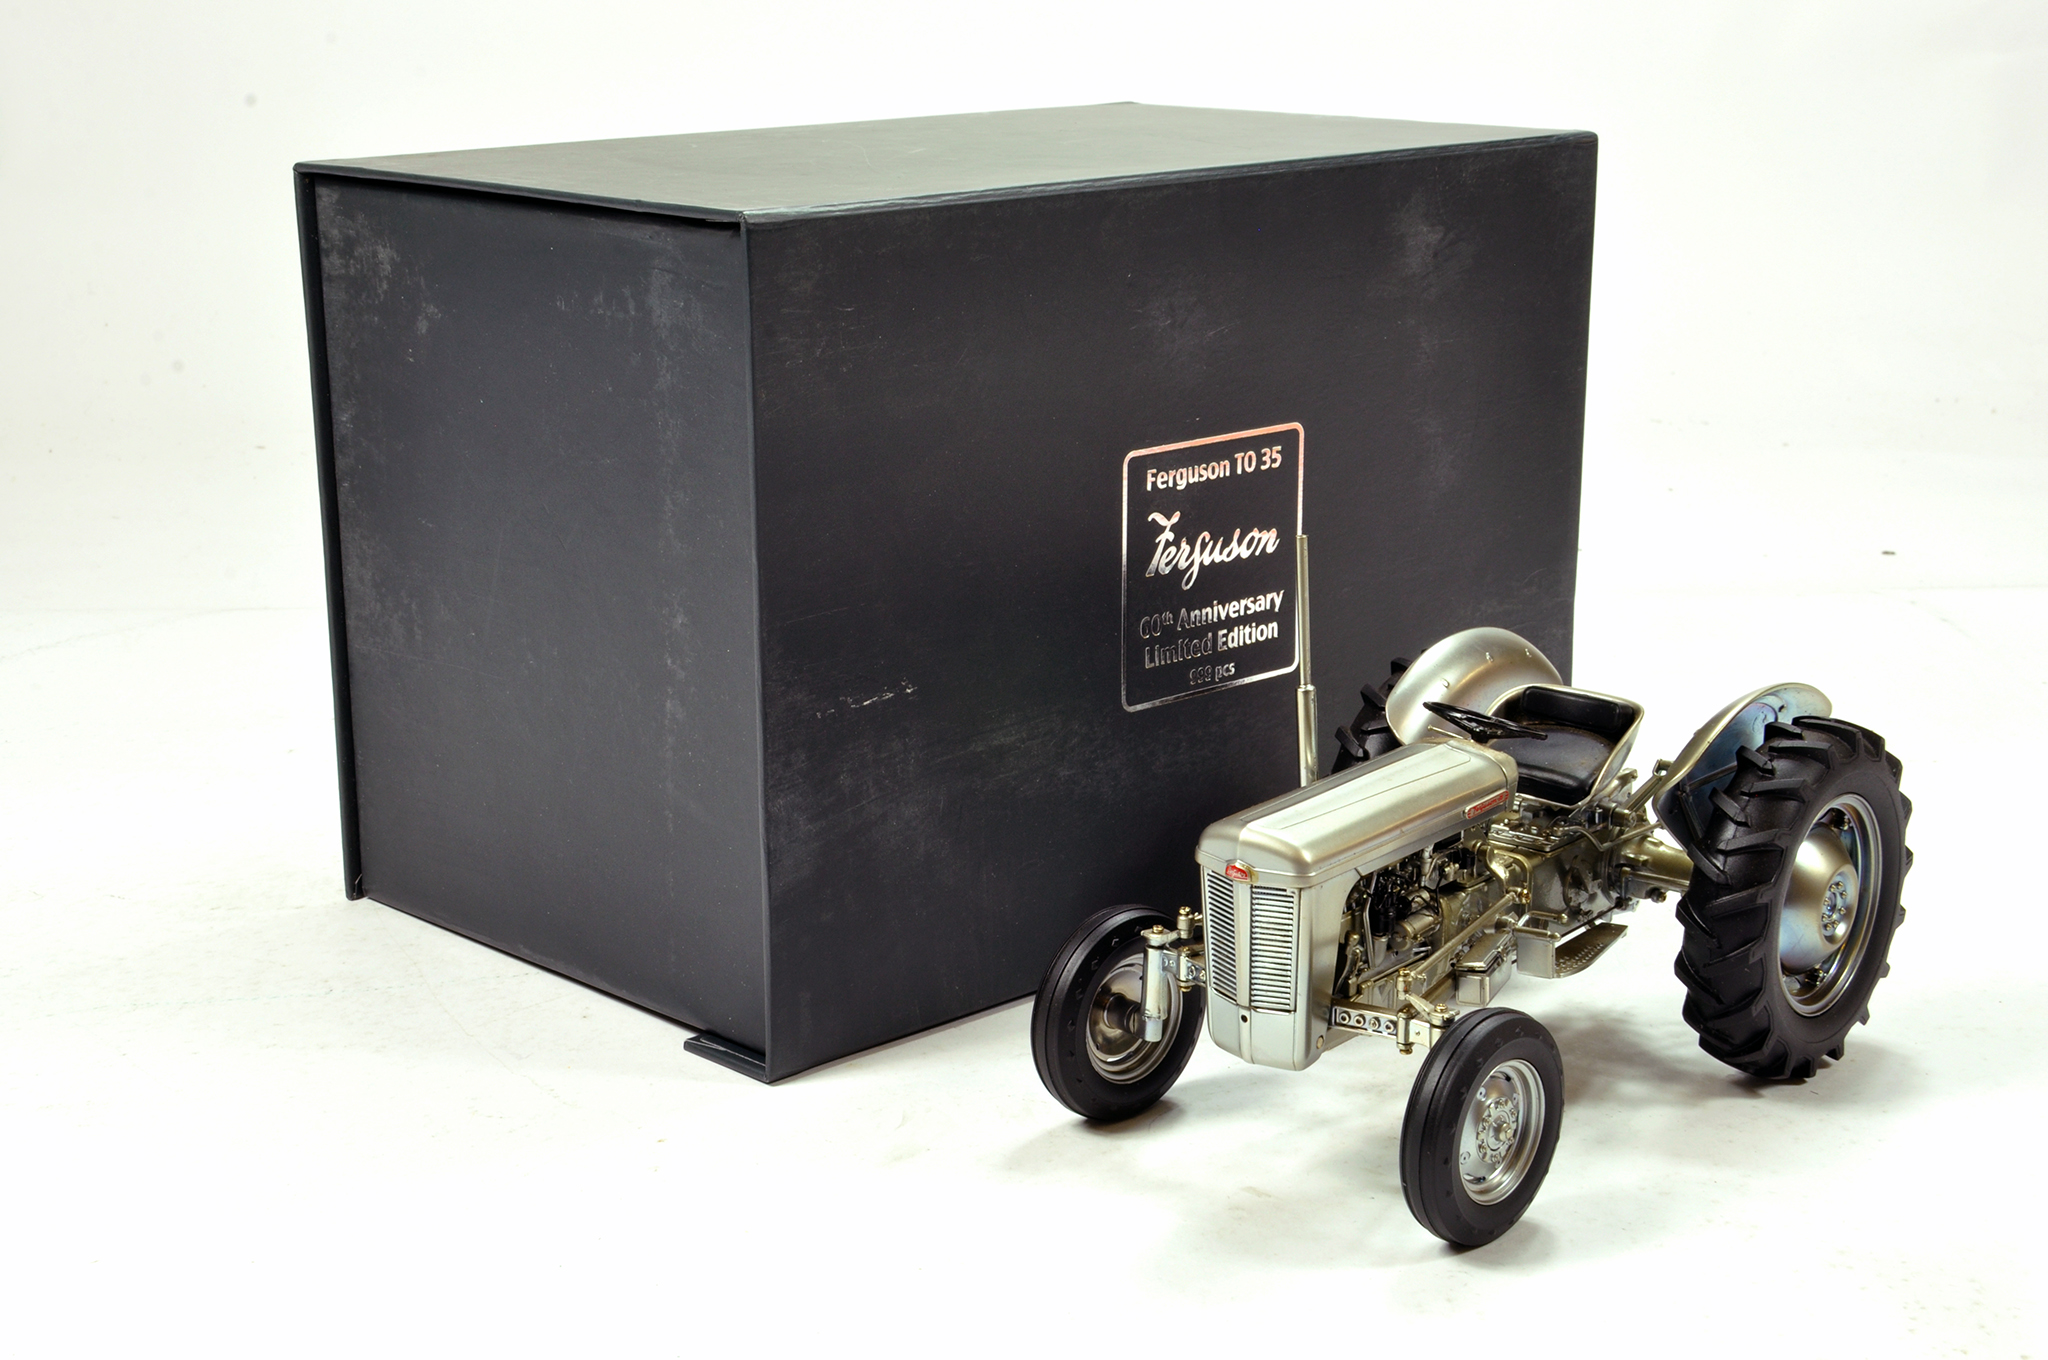 Lot 979 - Universal Hobbies 1/16 Ferguson TO35 Special Edition Tractor. Generally VG but some staining in